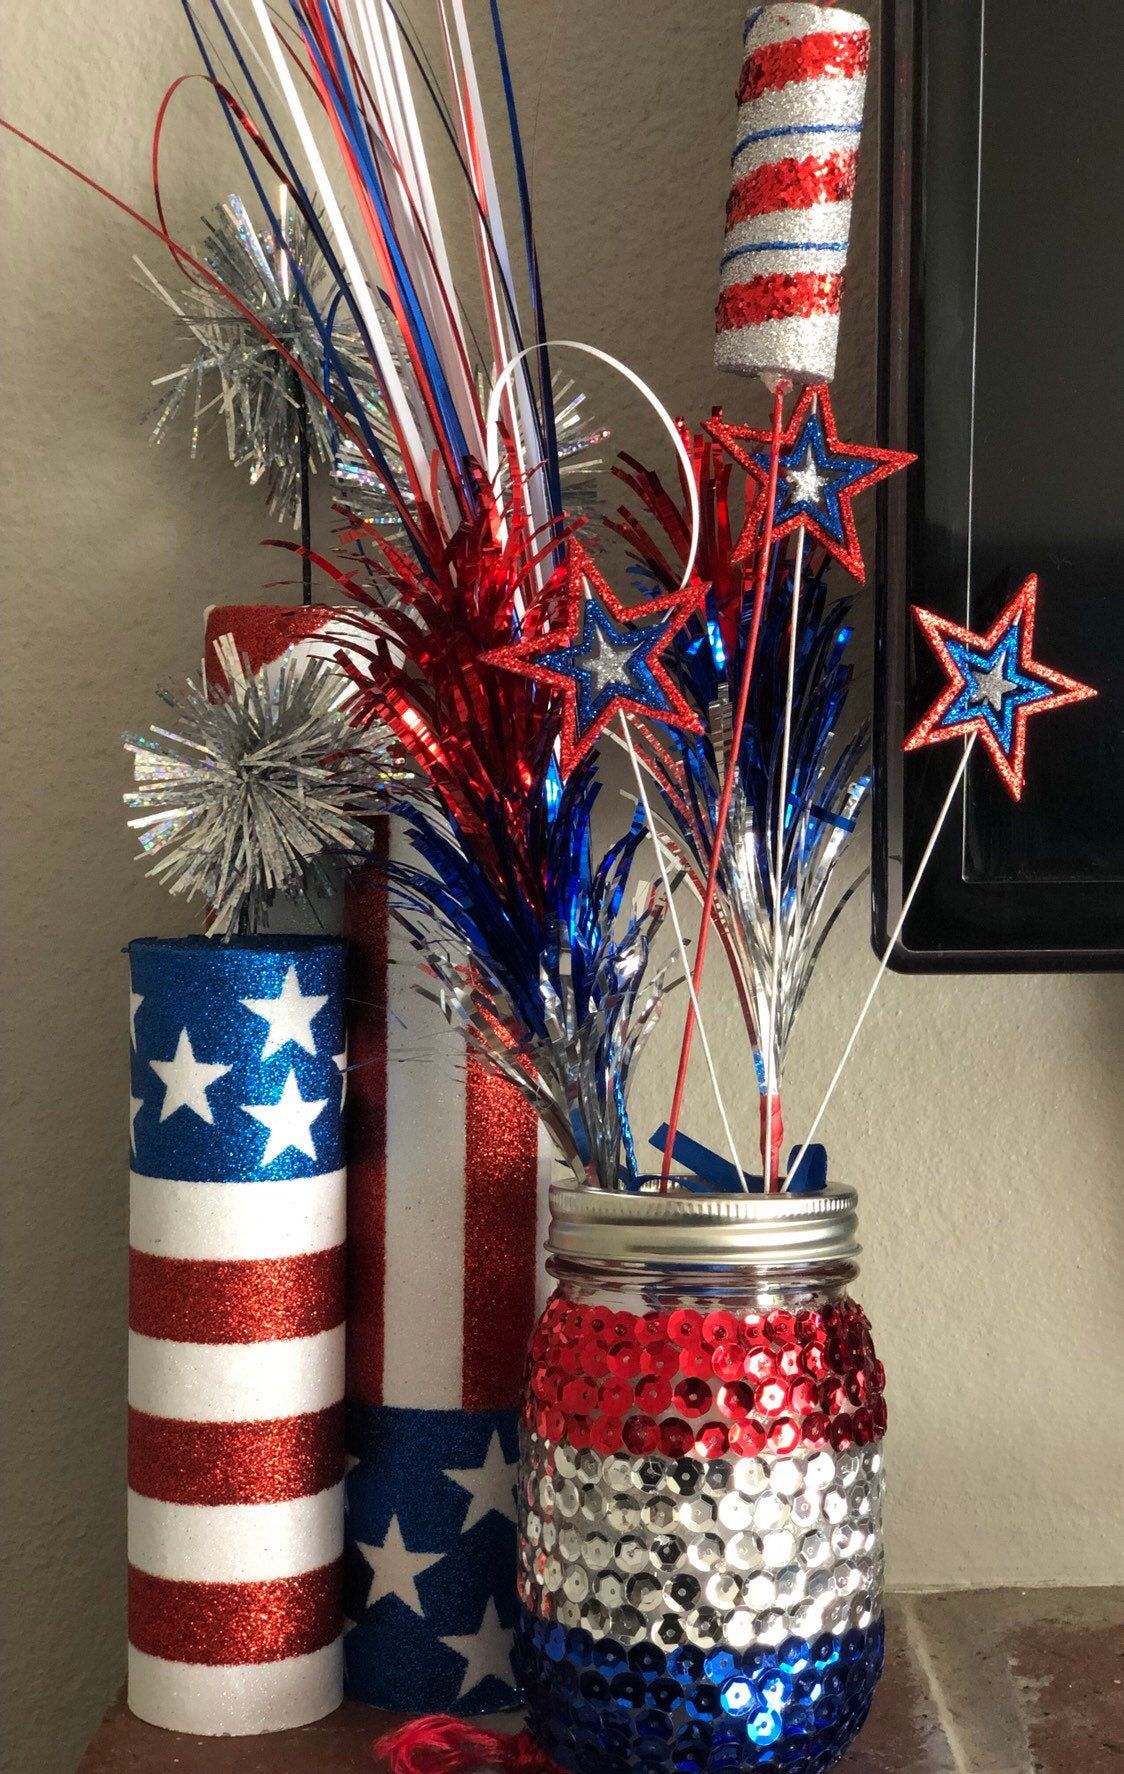 Centerpiece Party Birthday 4th Of July Etsy In 2020 Fourth Of July Crafts For Kids 4th Of July Decorations 4th Of July